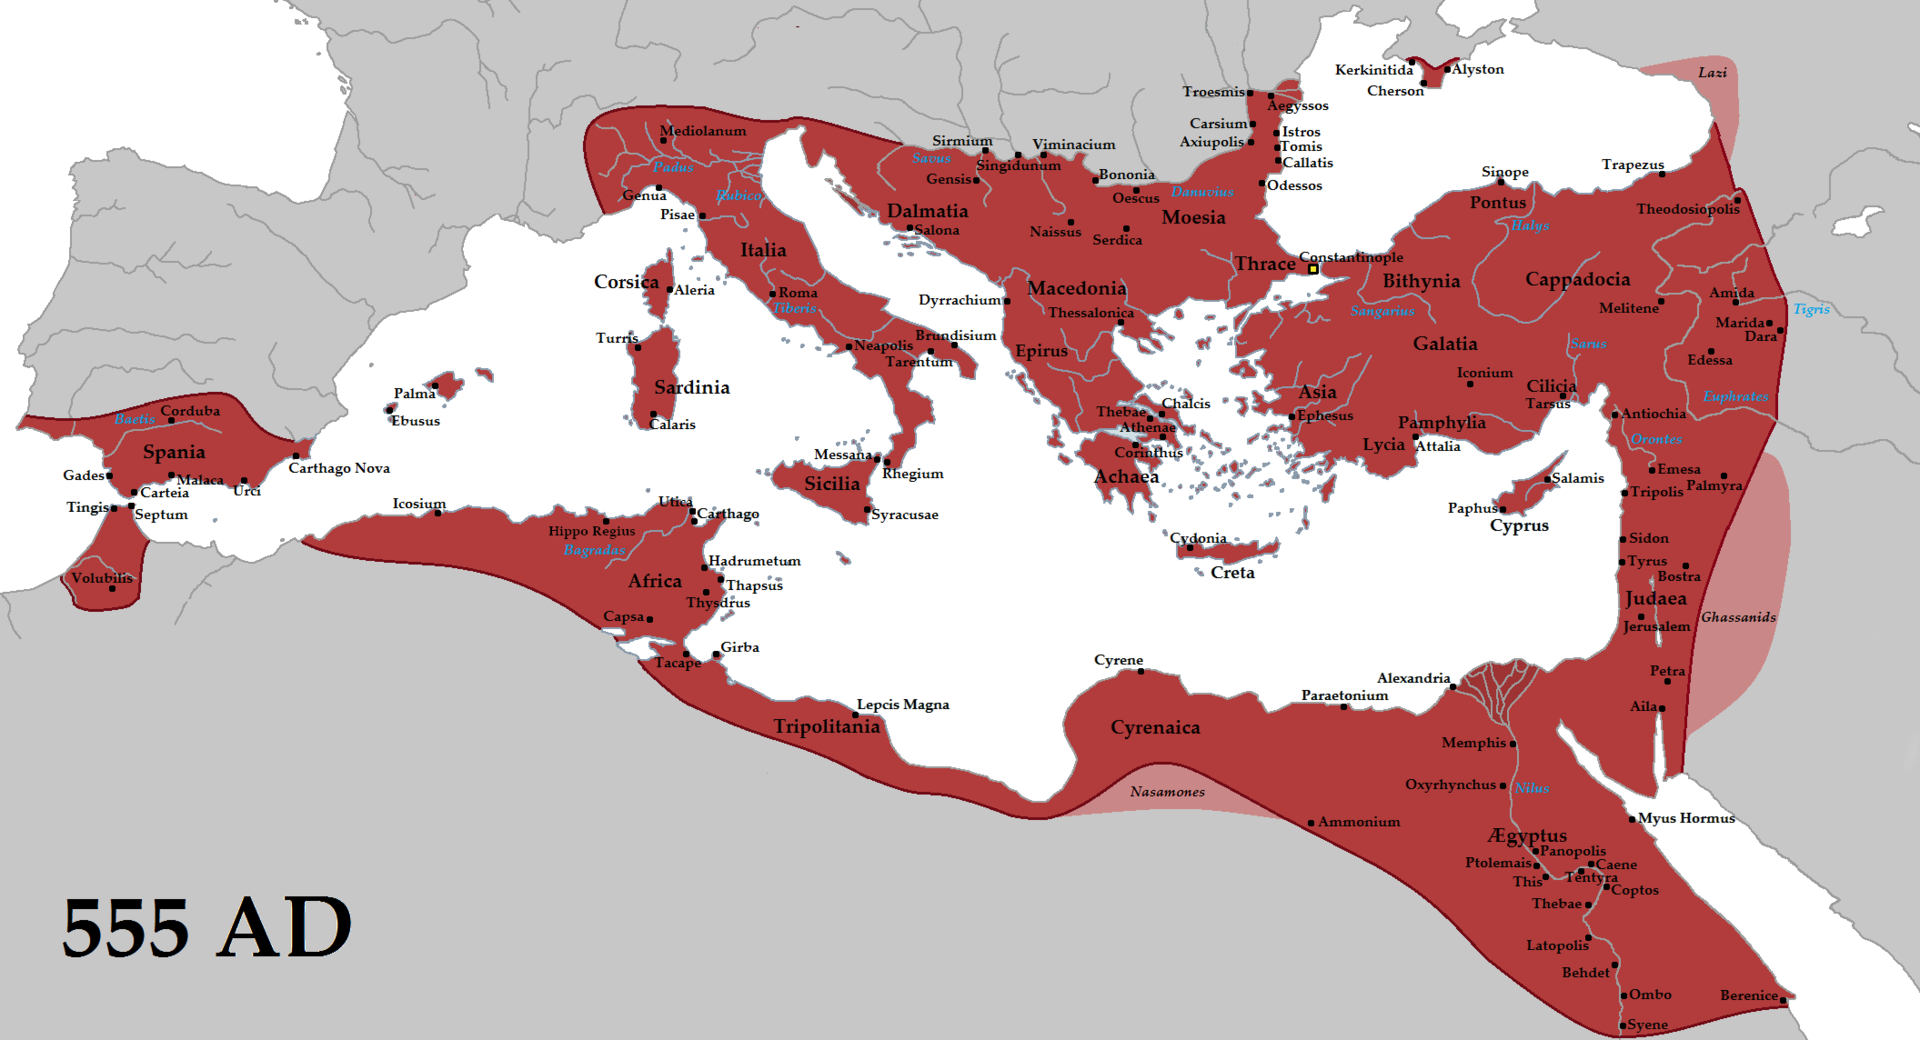 http://image.noelshack.com/fichiers/2017/24/6/1497684235-1920px-justinian555ad.png